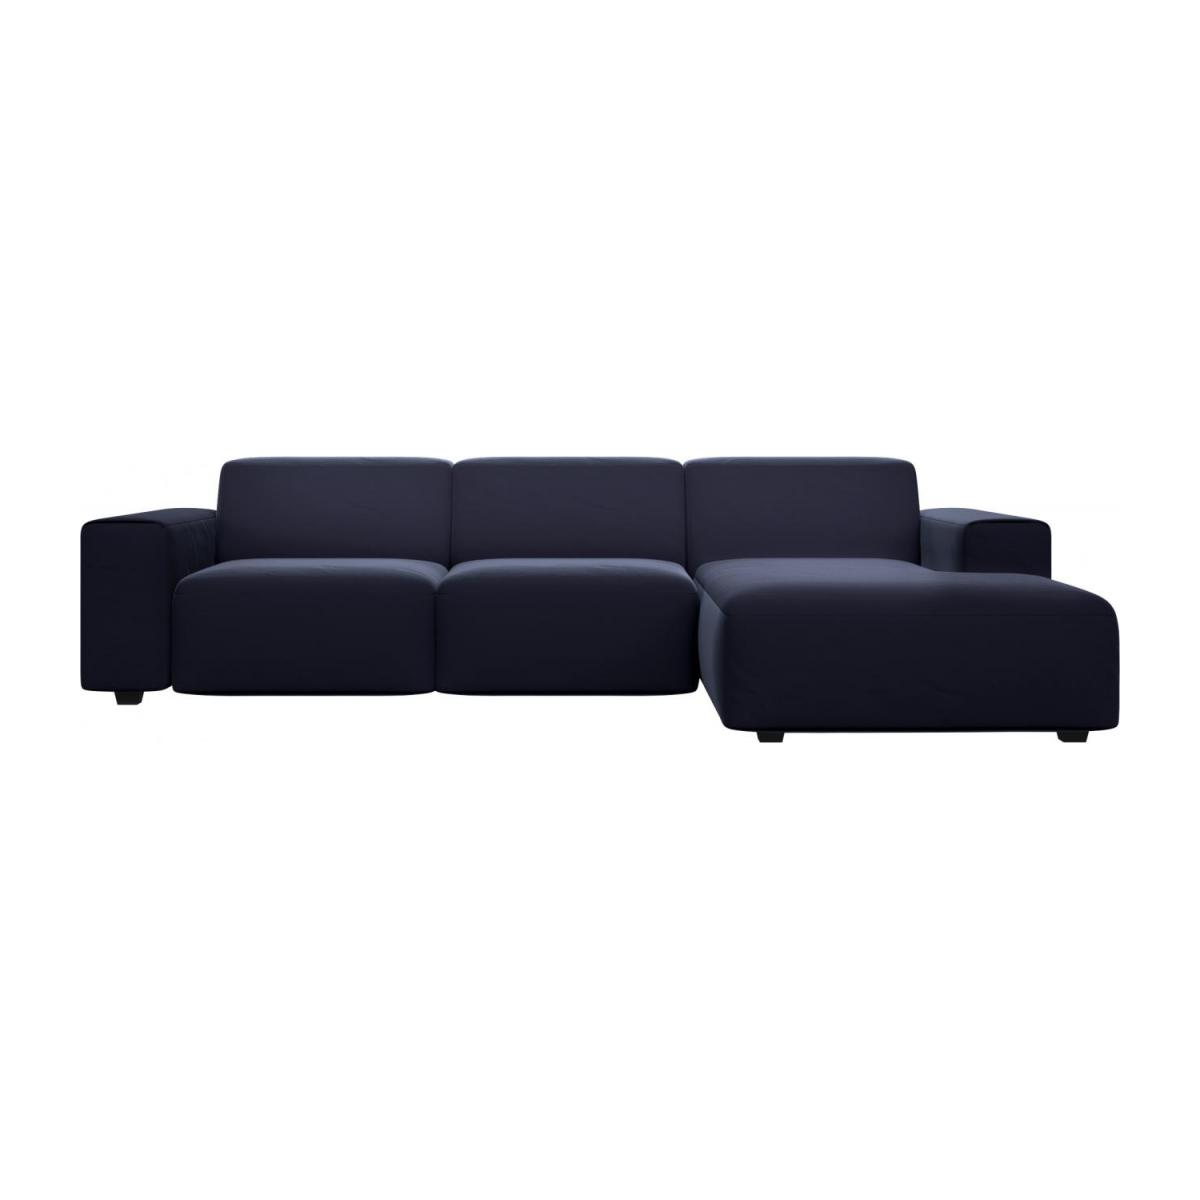 3 seater sofa with chaise longue on the right in Super Velvet fabric, dark blue n°3